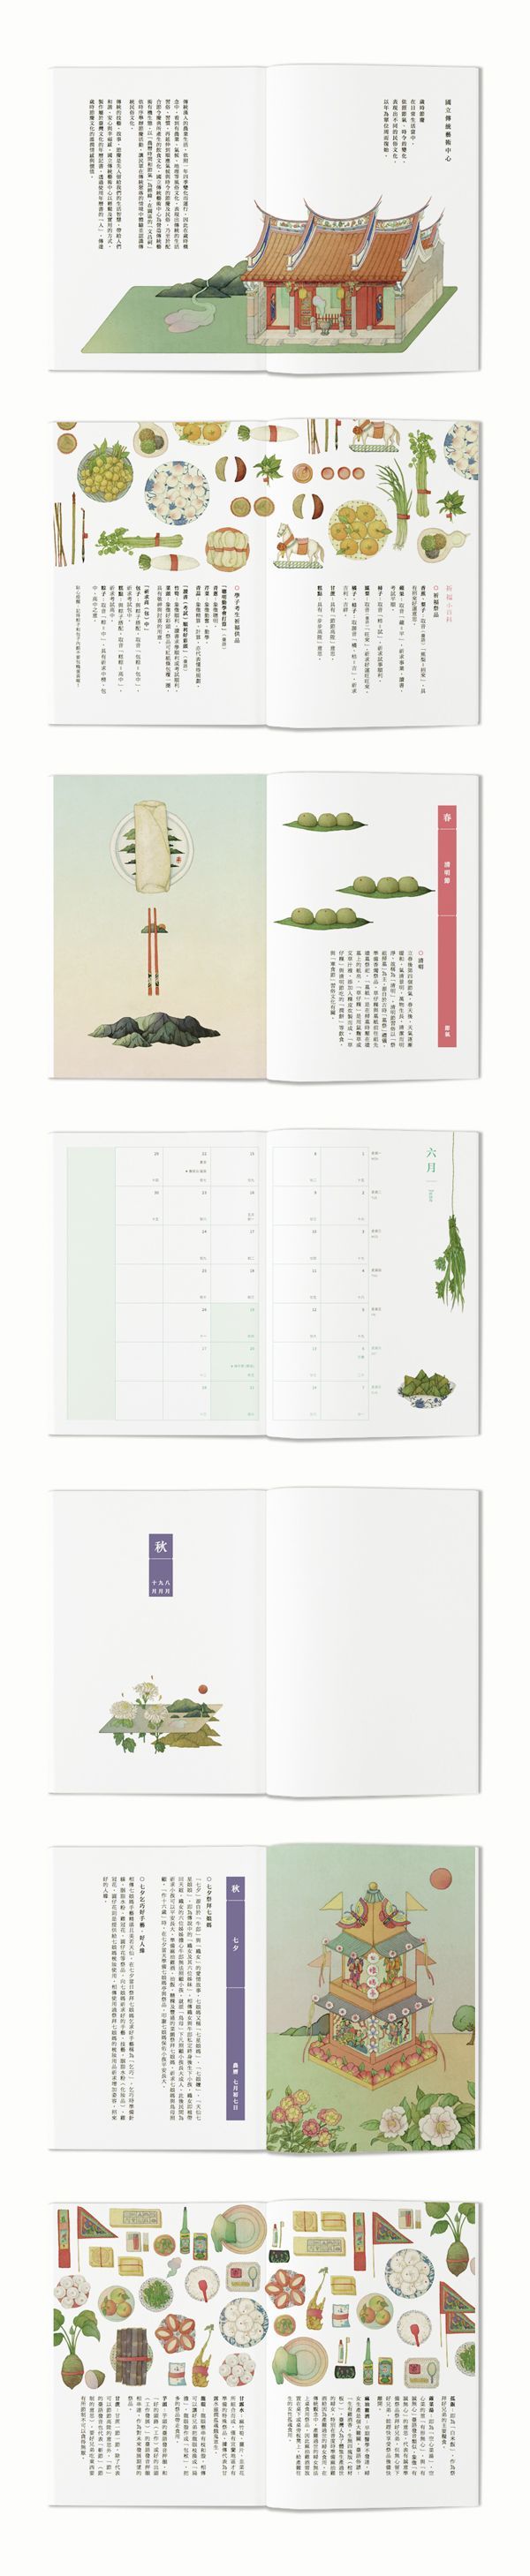 Taipei graphic designer di-chun chen and illustrator whooli chen created together this Taiwanese traditional customs and etiquette calendar book.